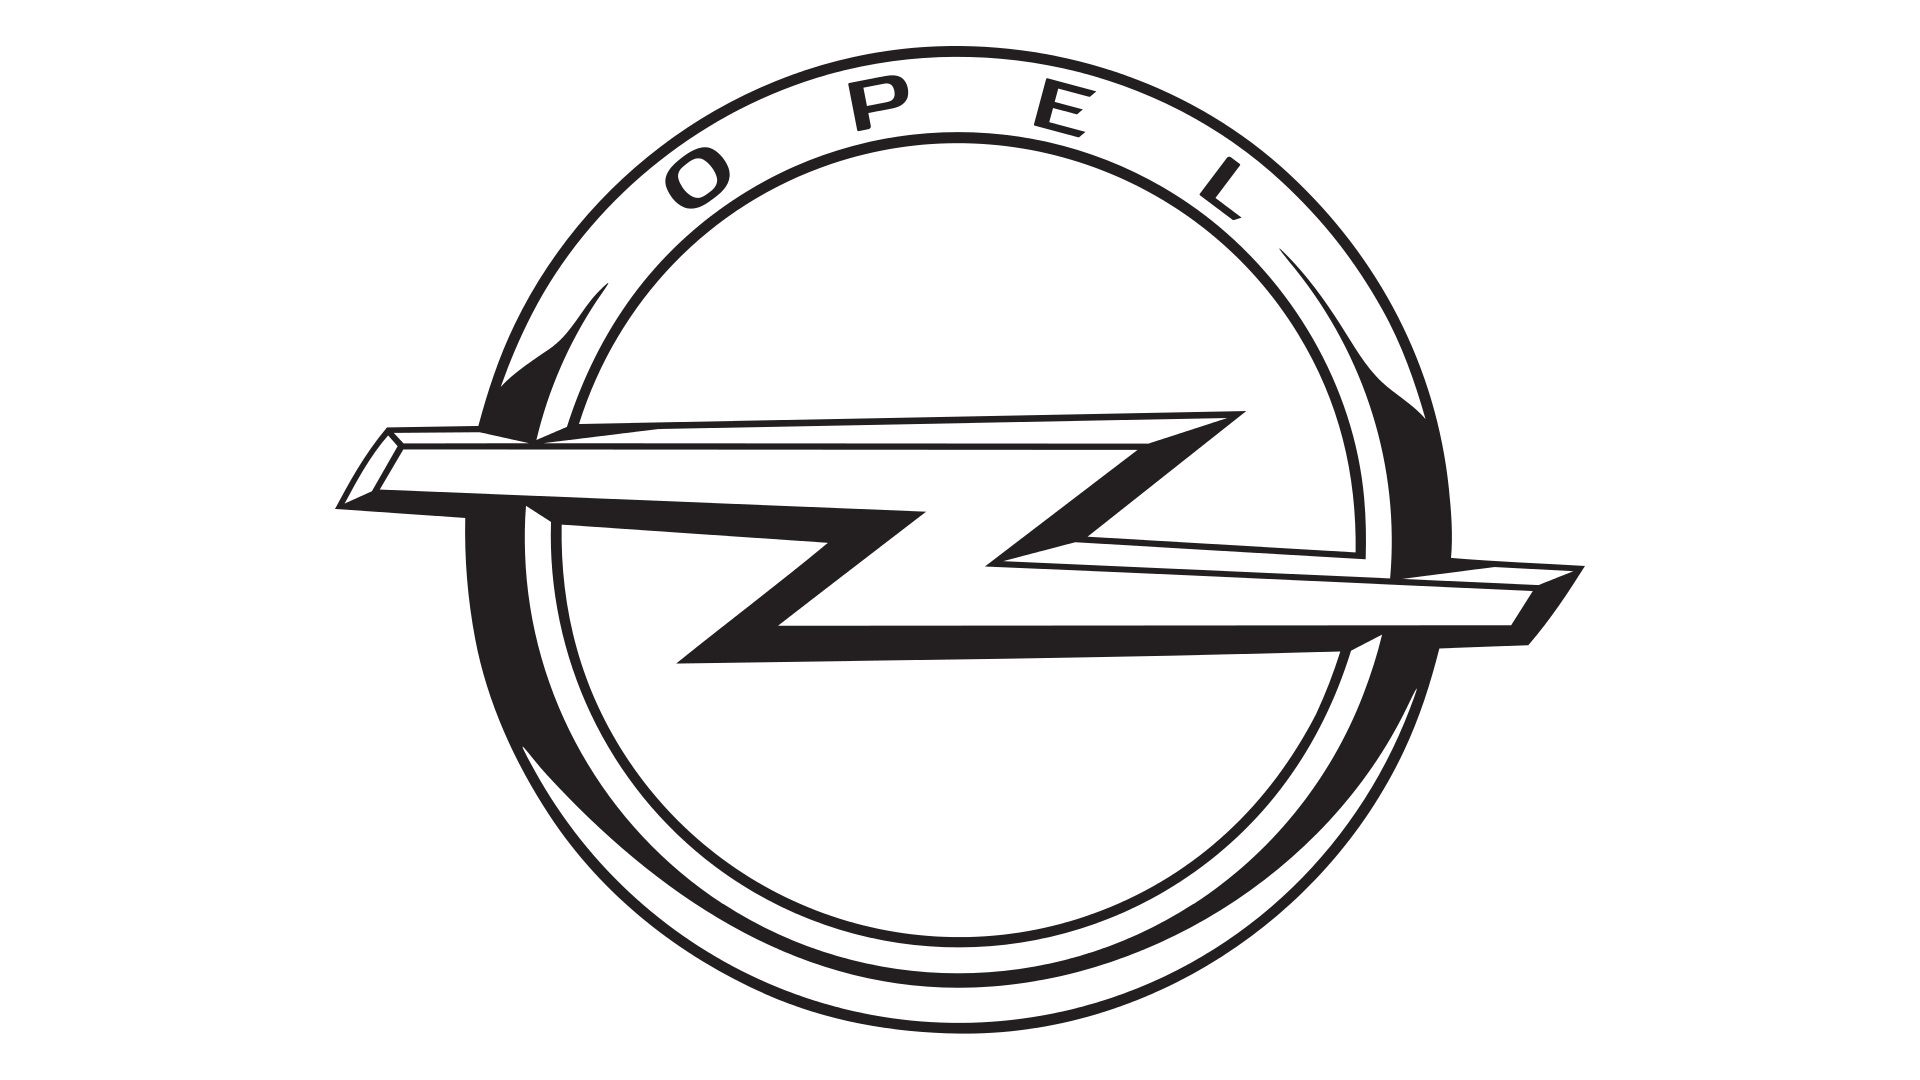 opel logo wallpapers - photo #30